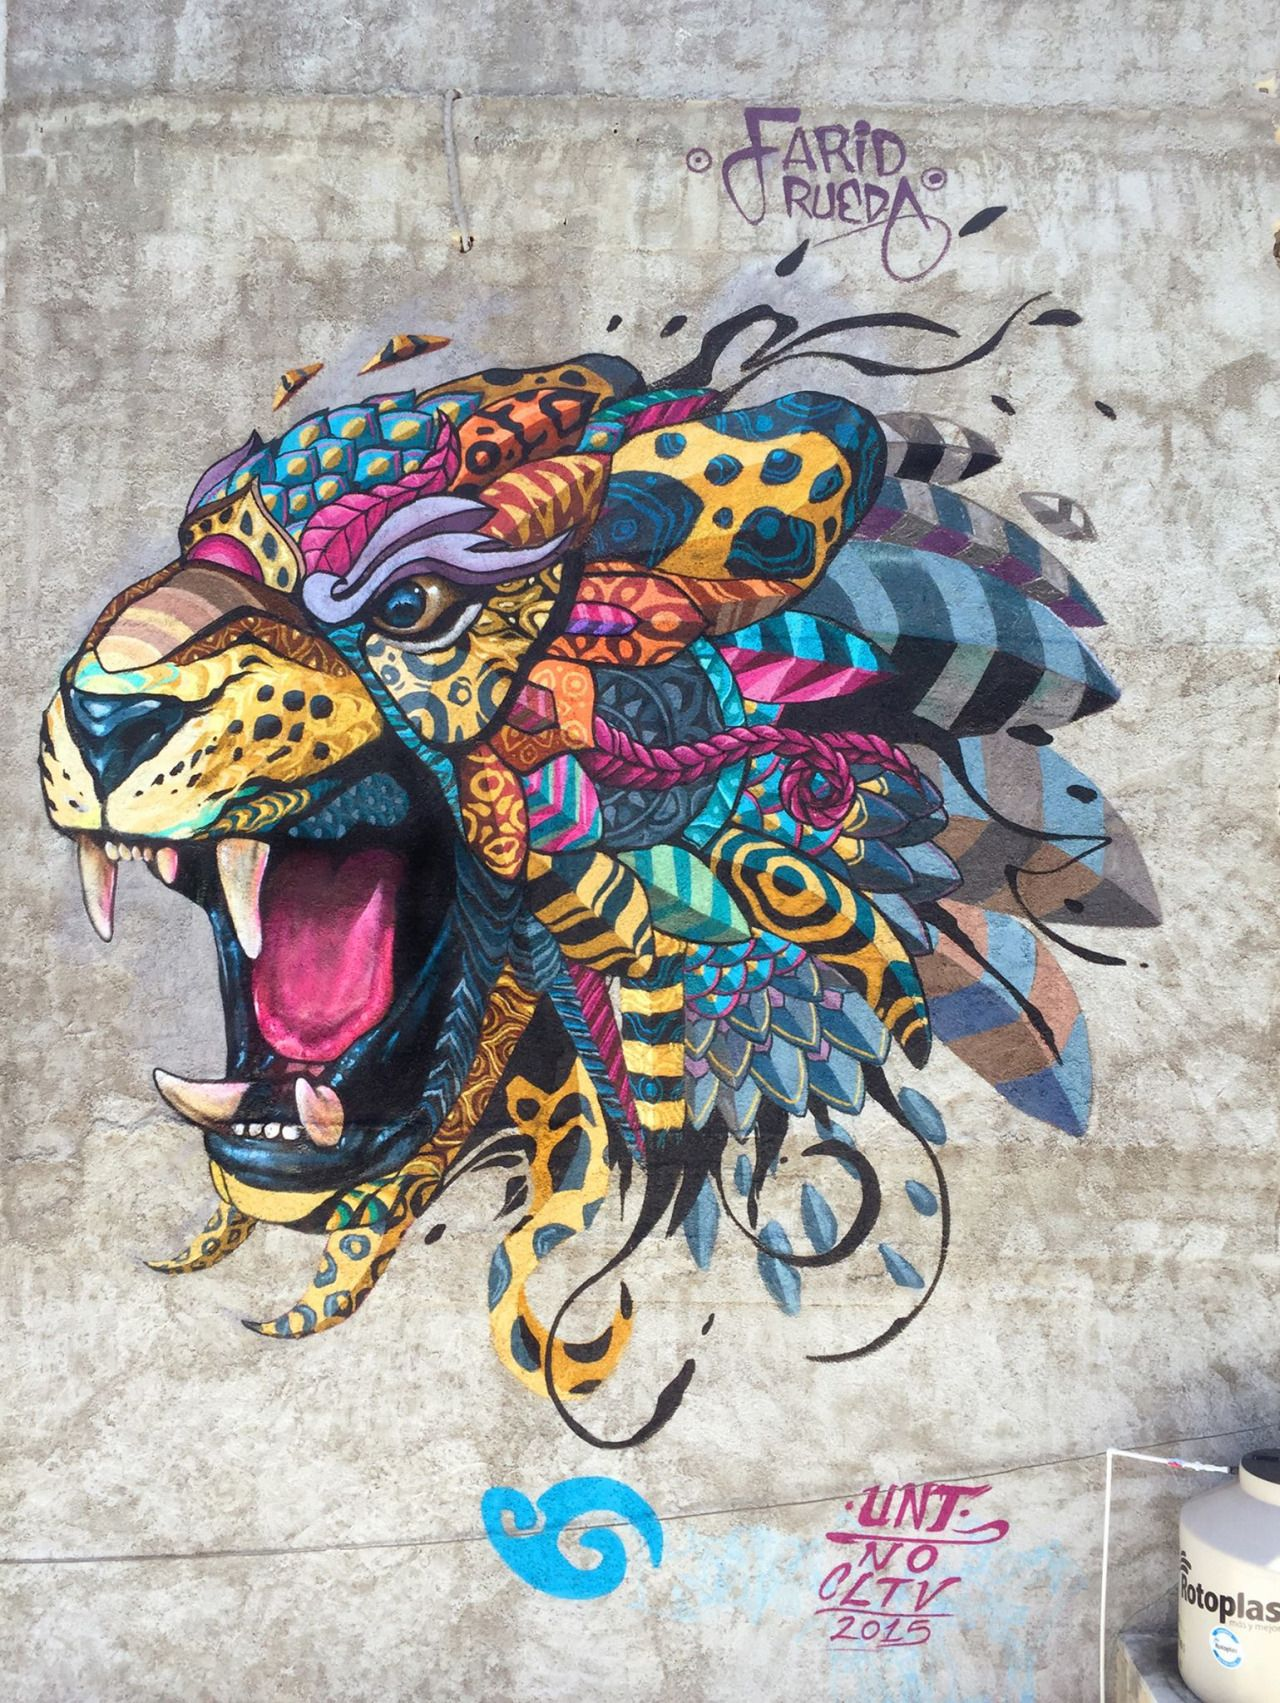 Im A Huge Fan Of Graffiti And Think This Is Pretty Amazing From